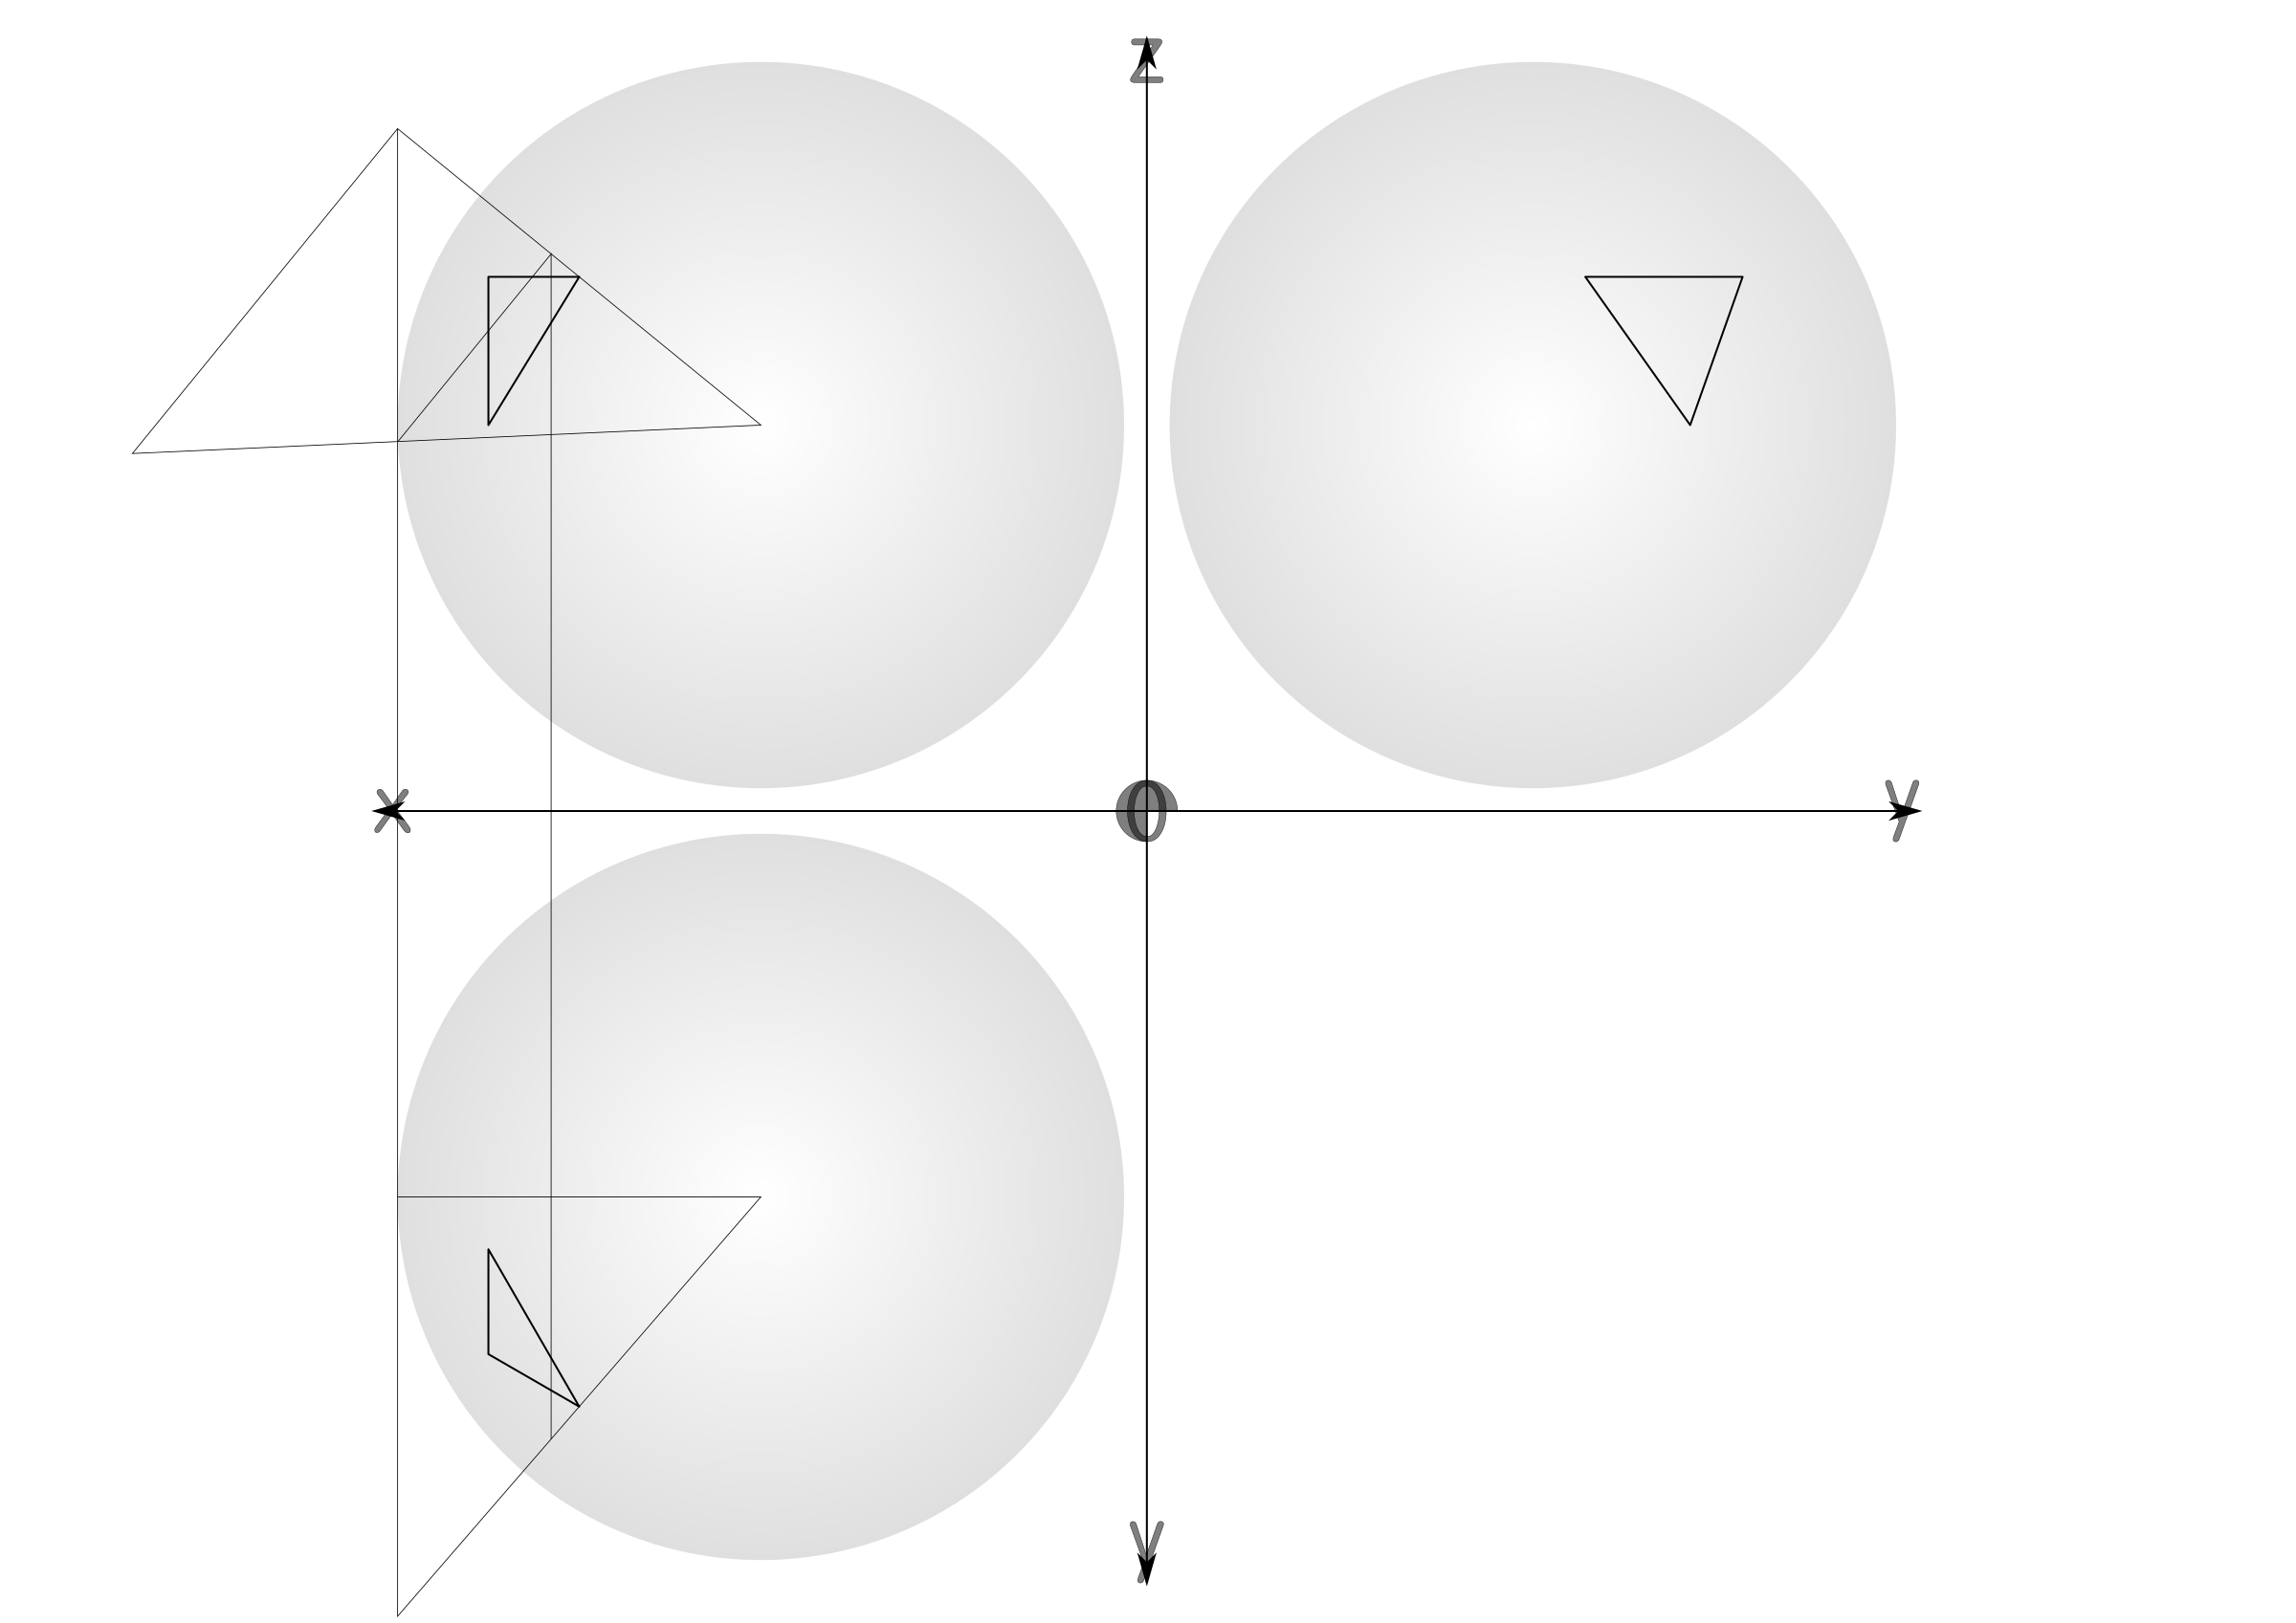 37 construction geodesic spheres recursive from tetrahedron by ric5sch